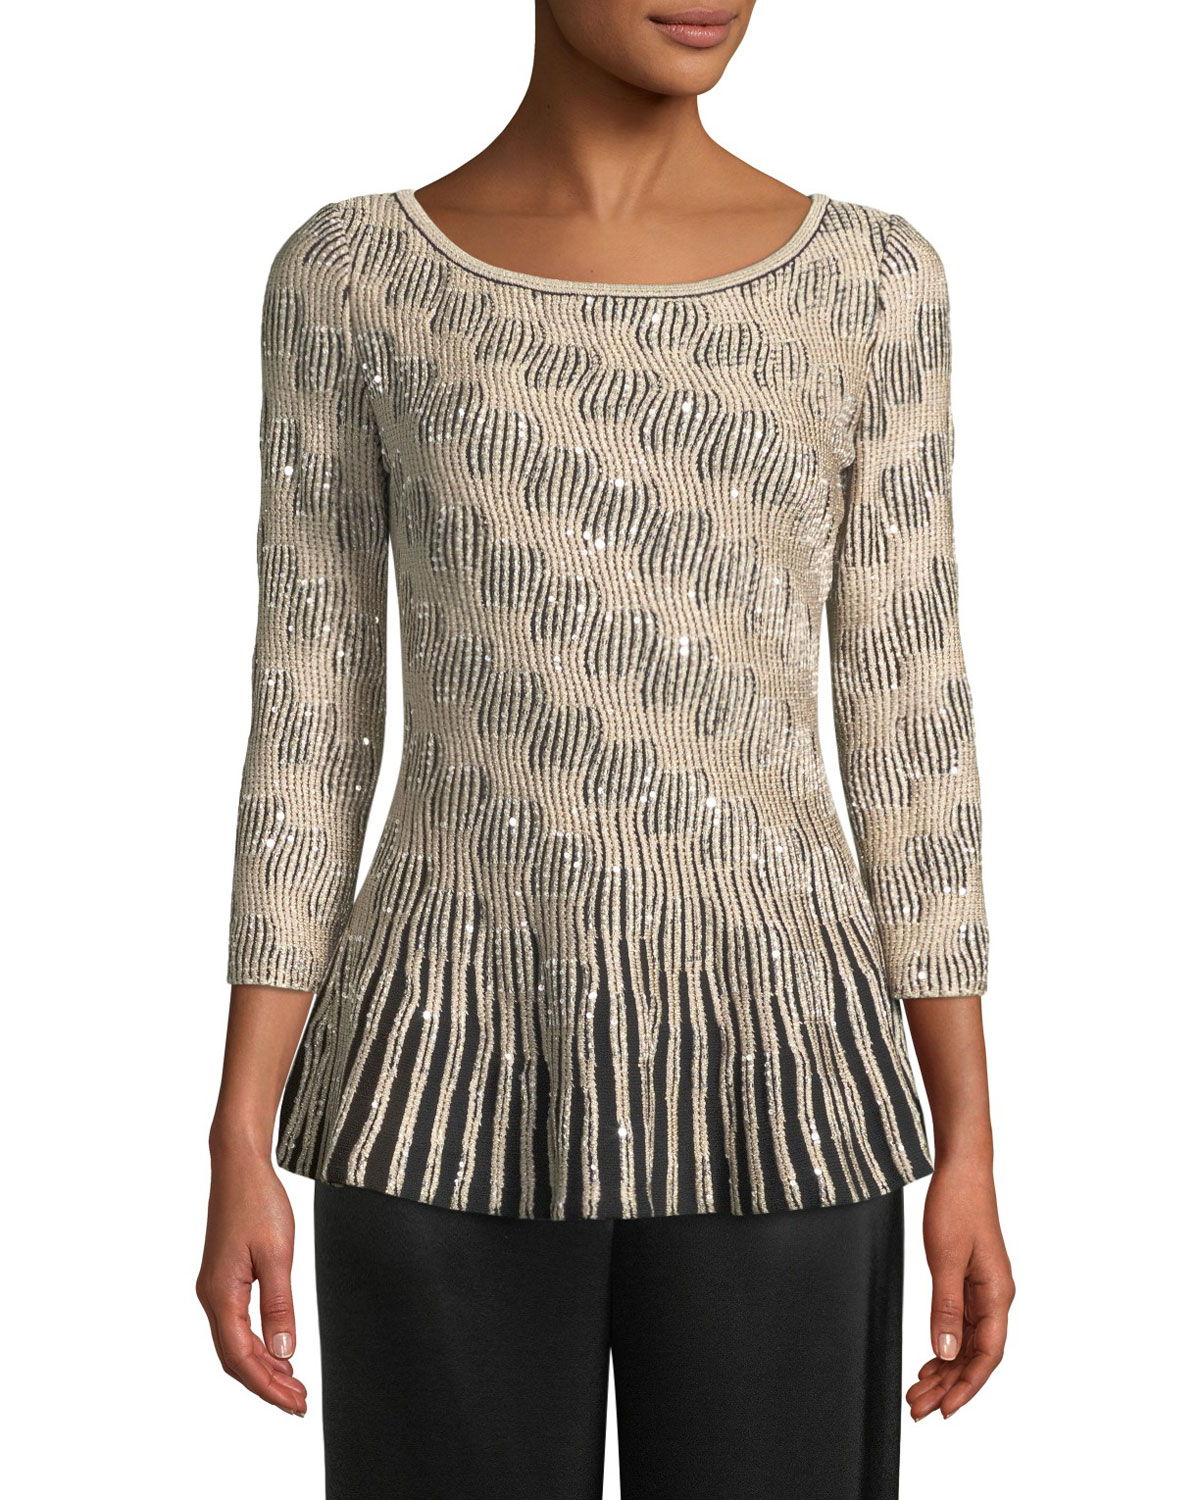 3/4-Sleeve Sequin Trellis Knit Peplum Sweater